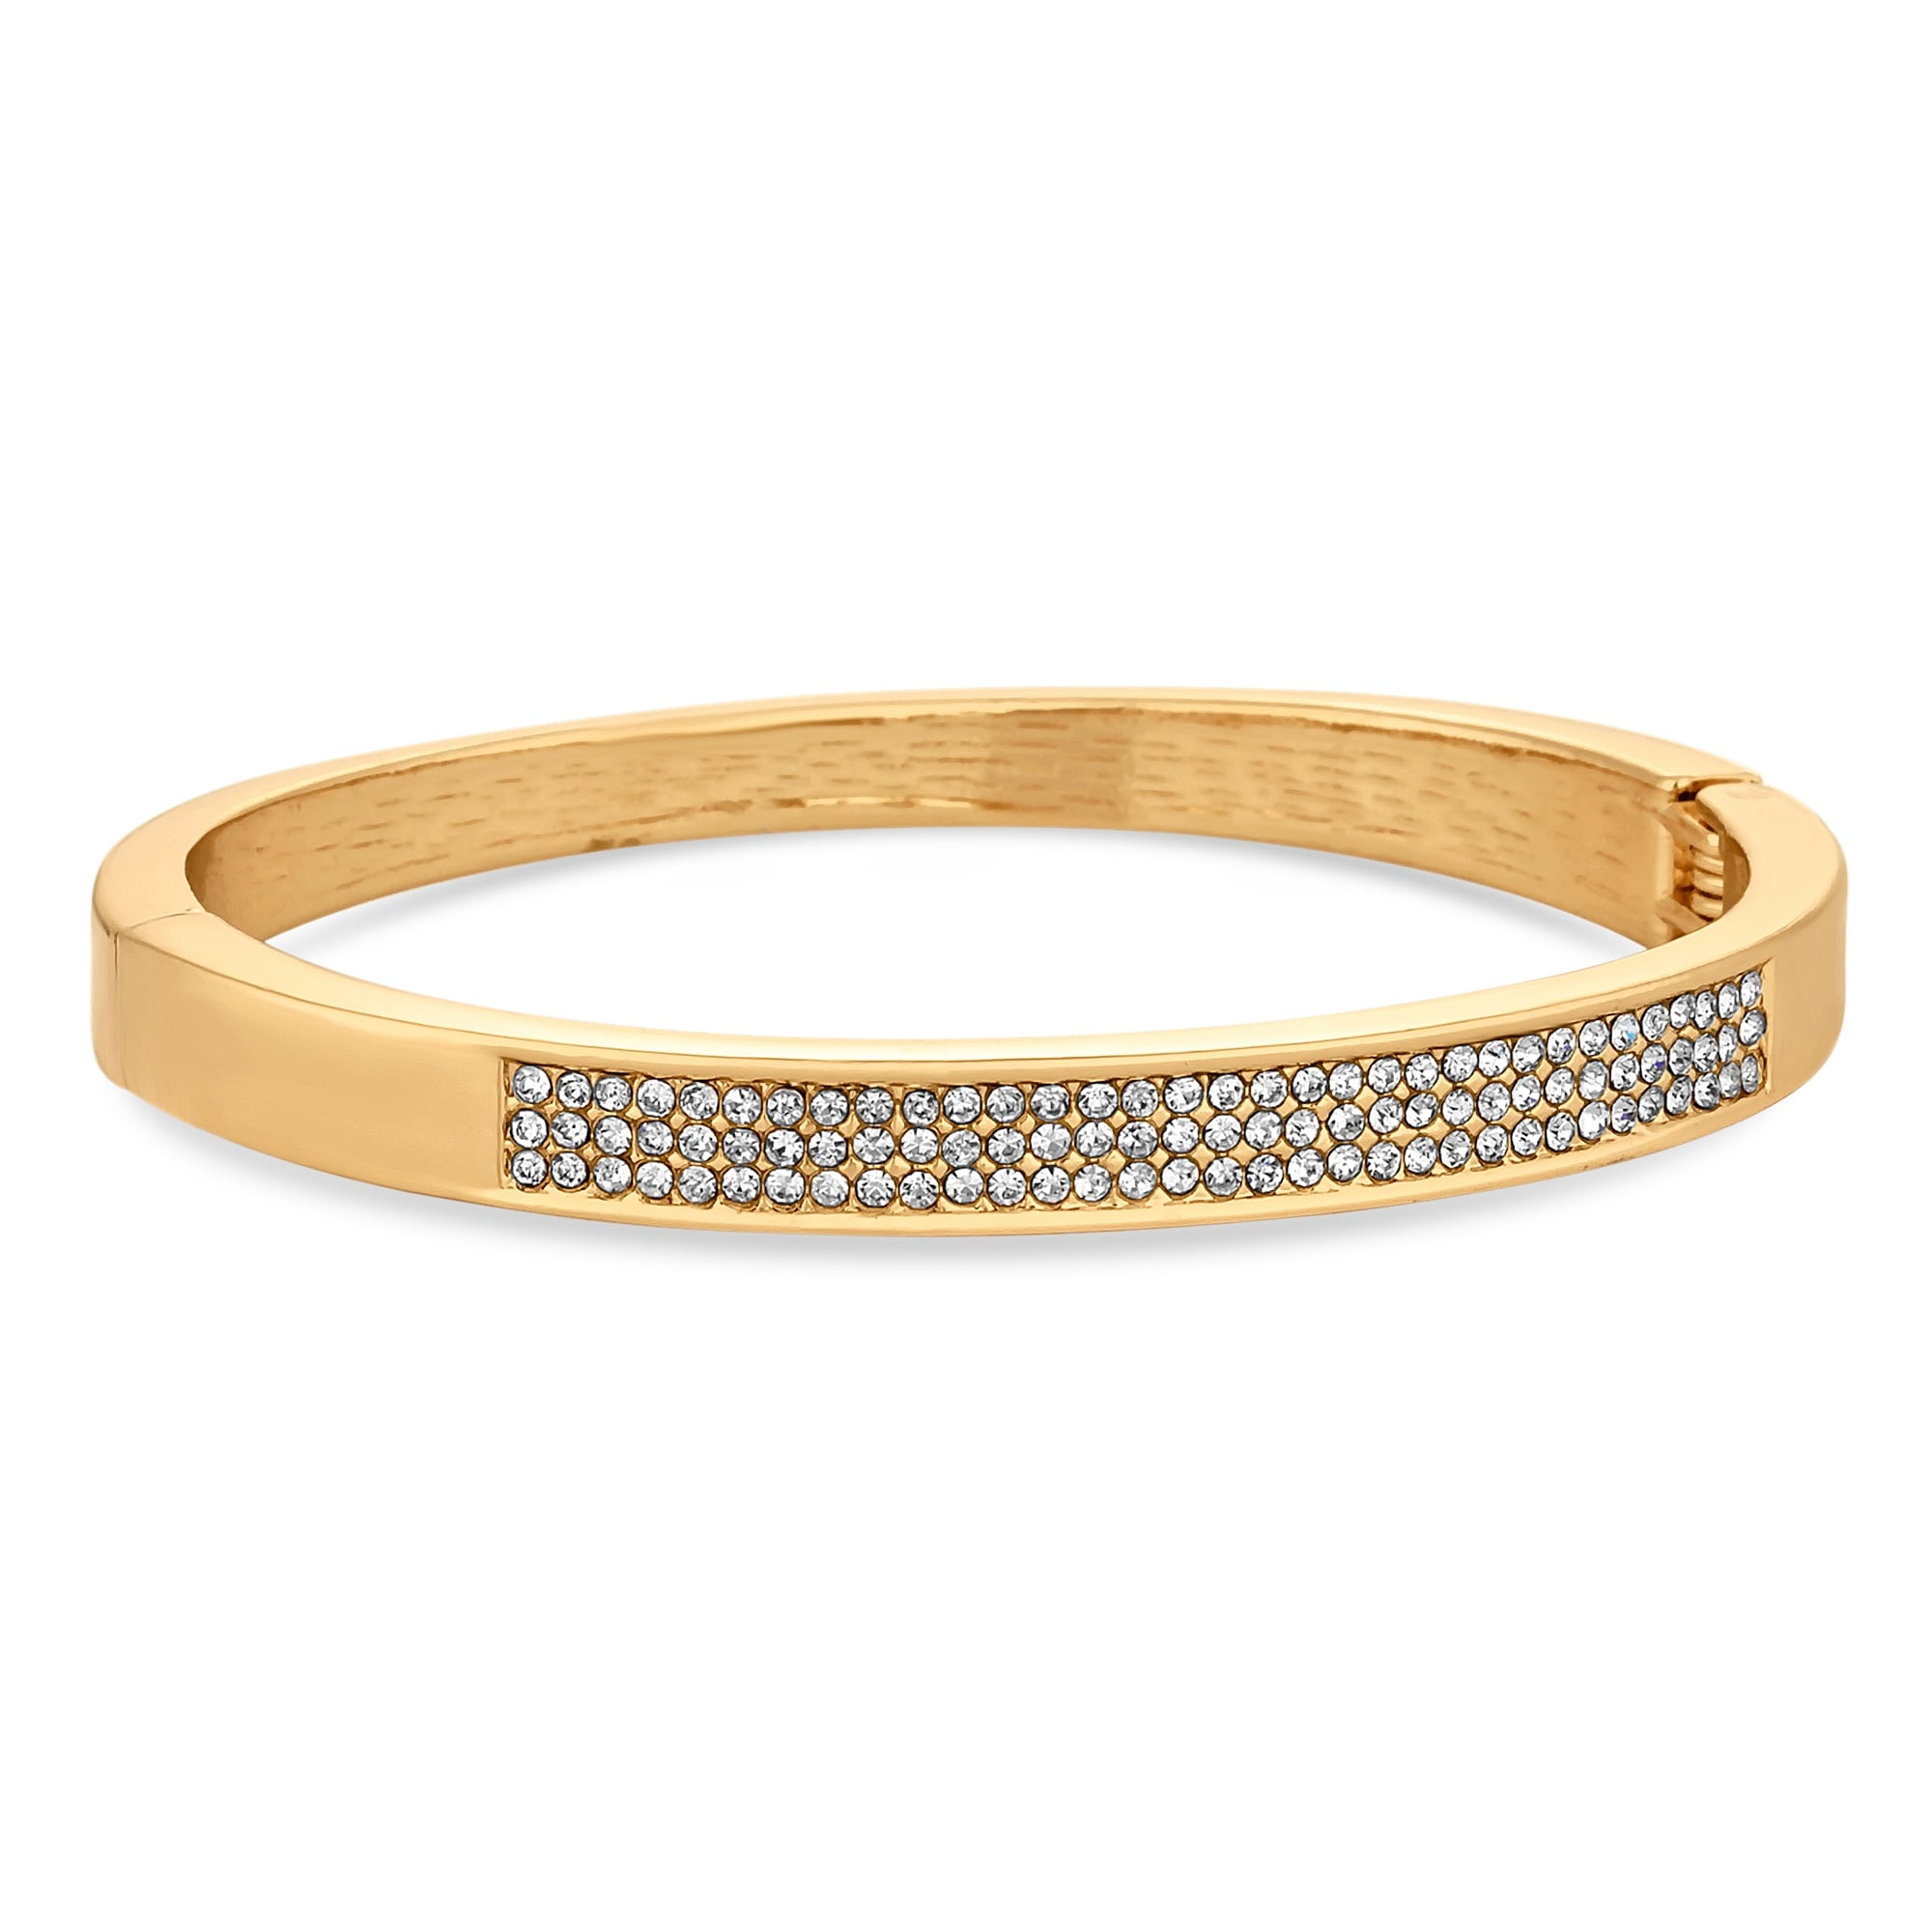 silver metallic pave pav lyst bangles normal tone jewelry product gallery michael bangle in kors